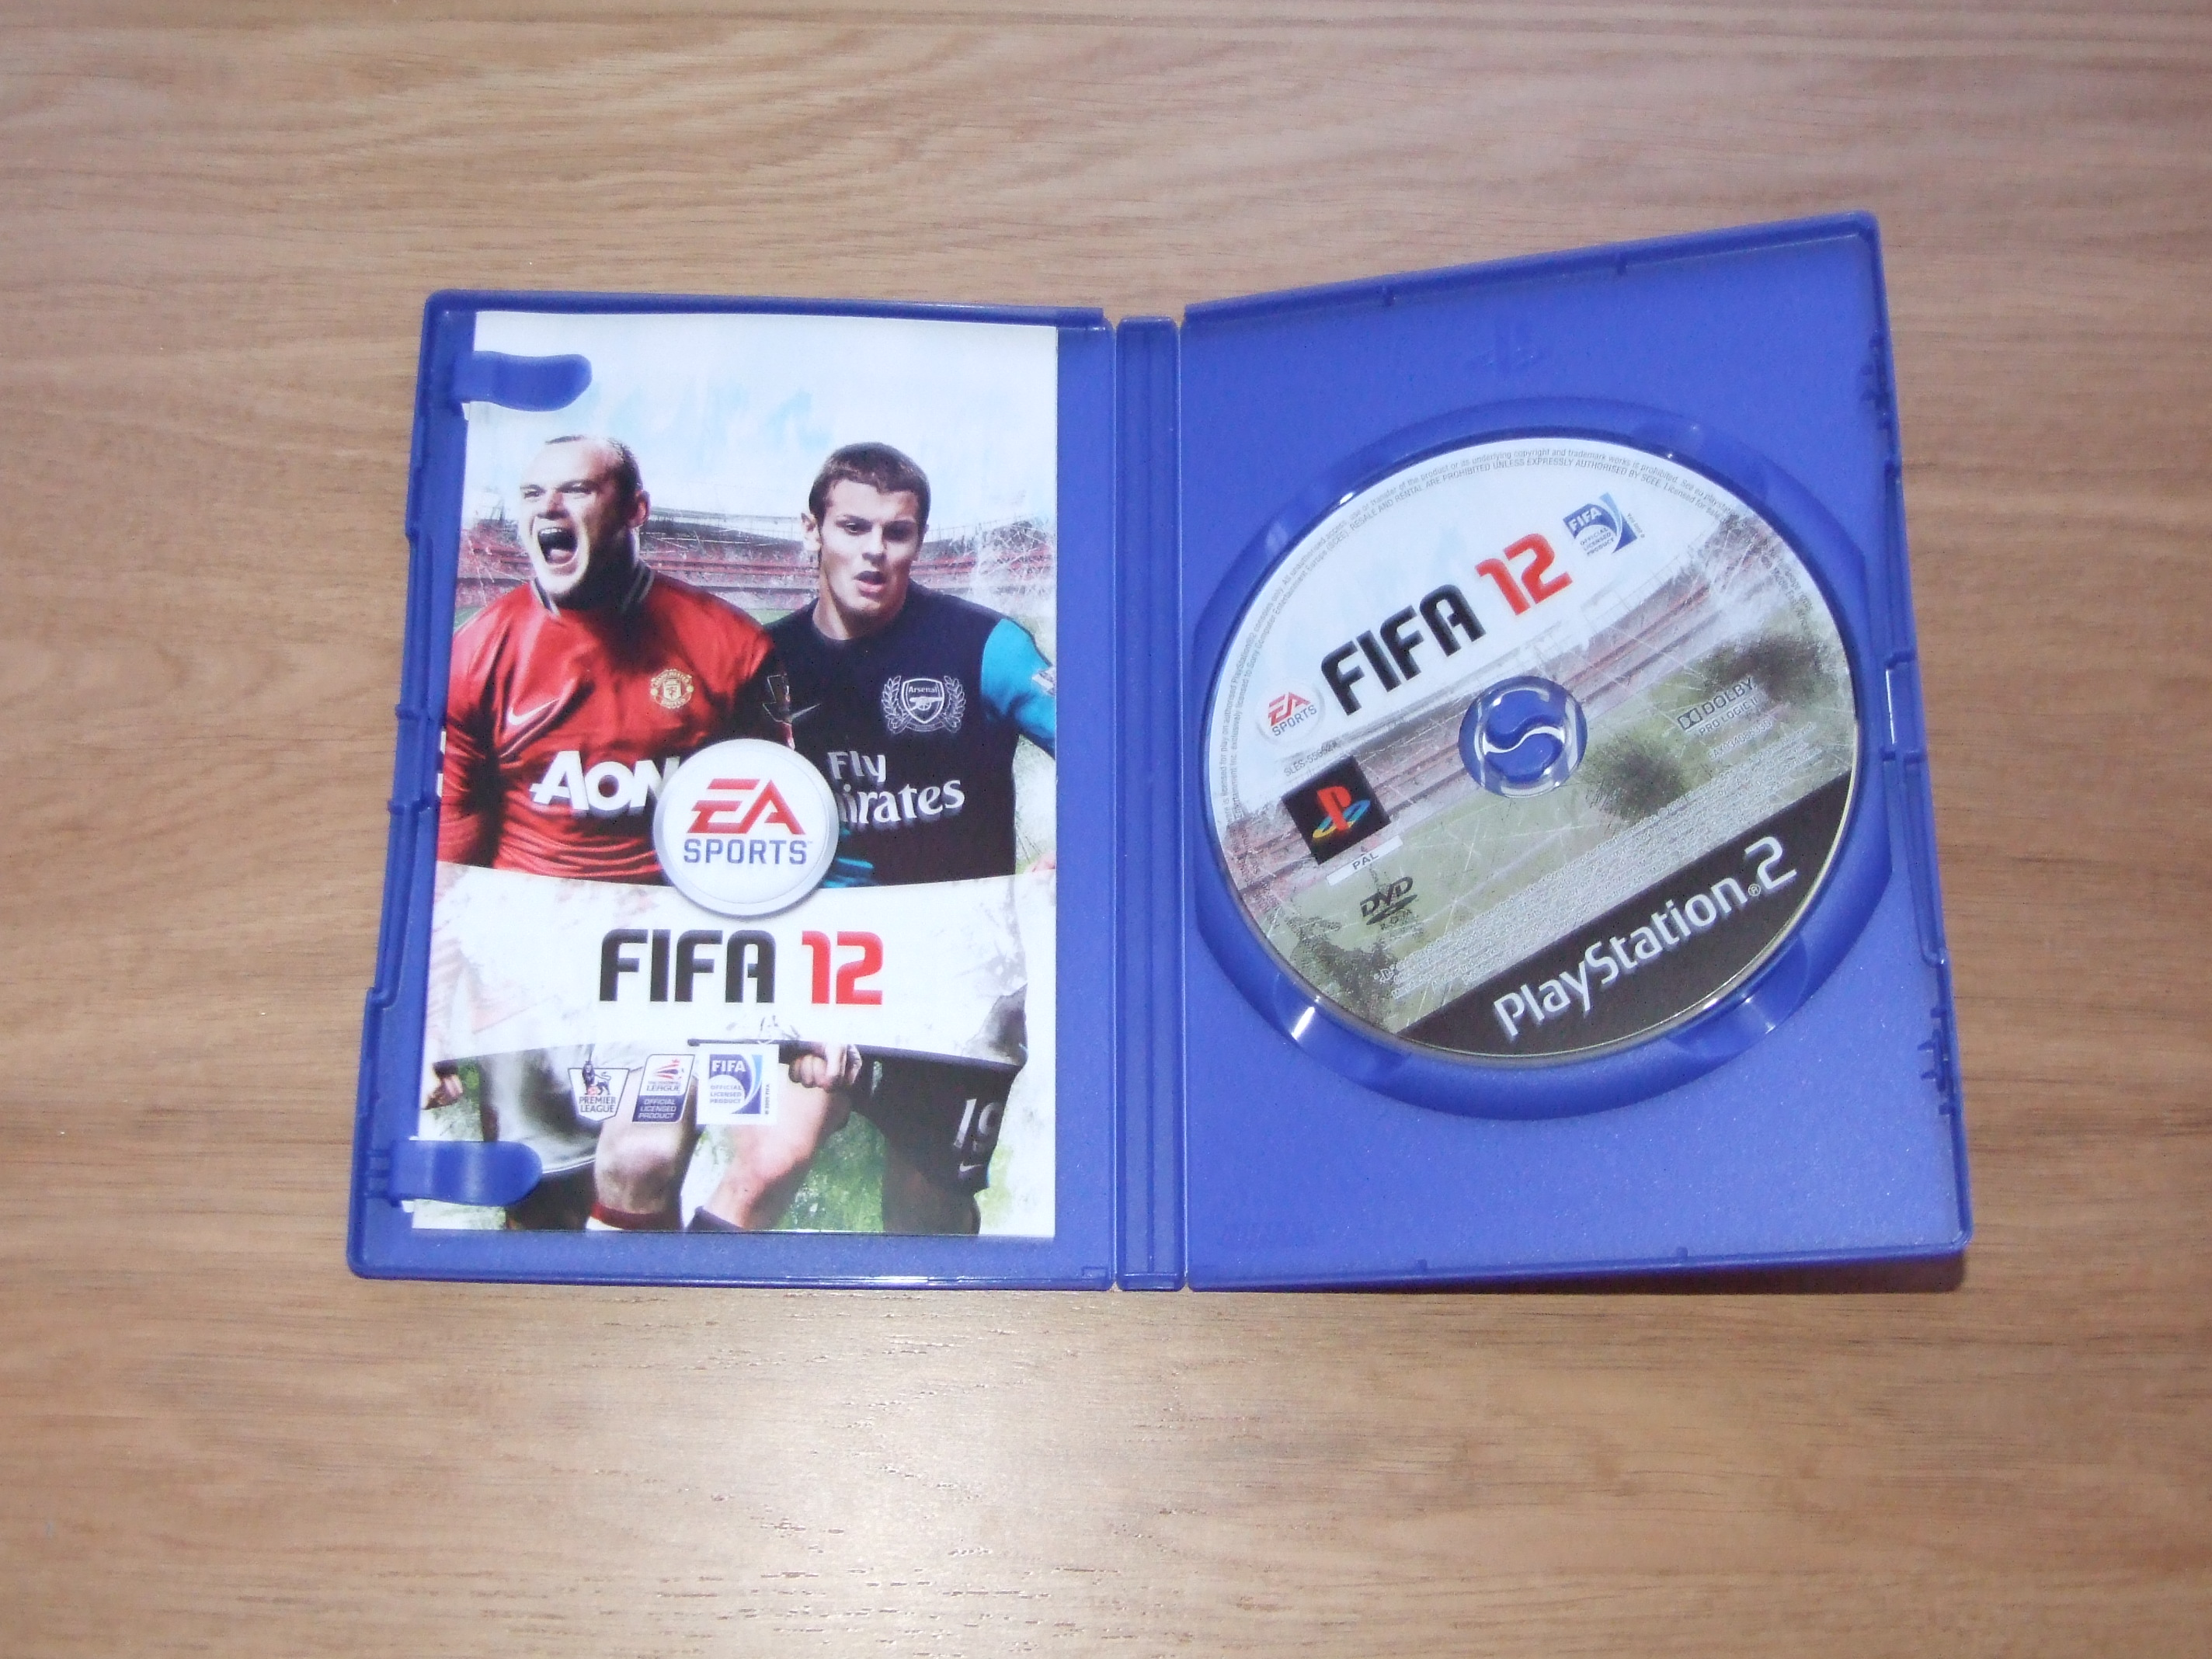 FIFA 12 [PS2] - Case - Inside